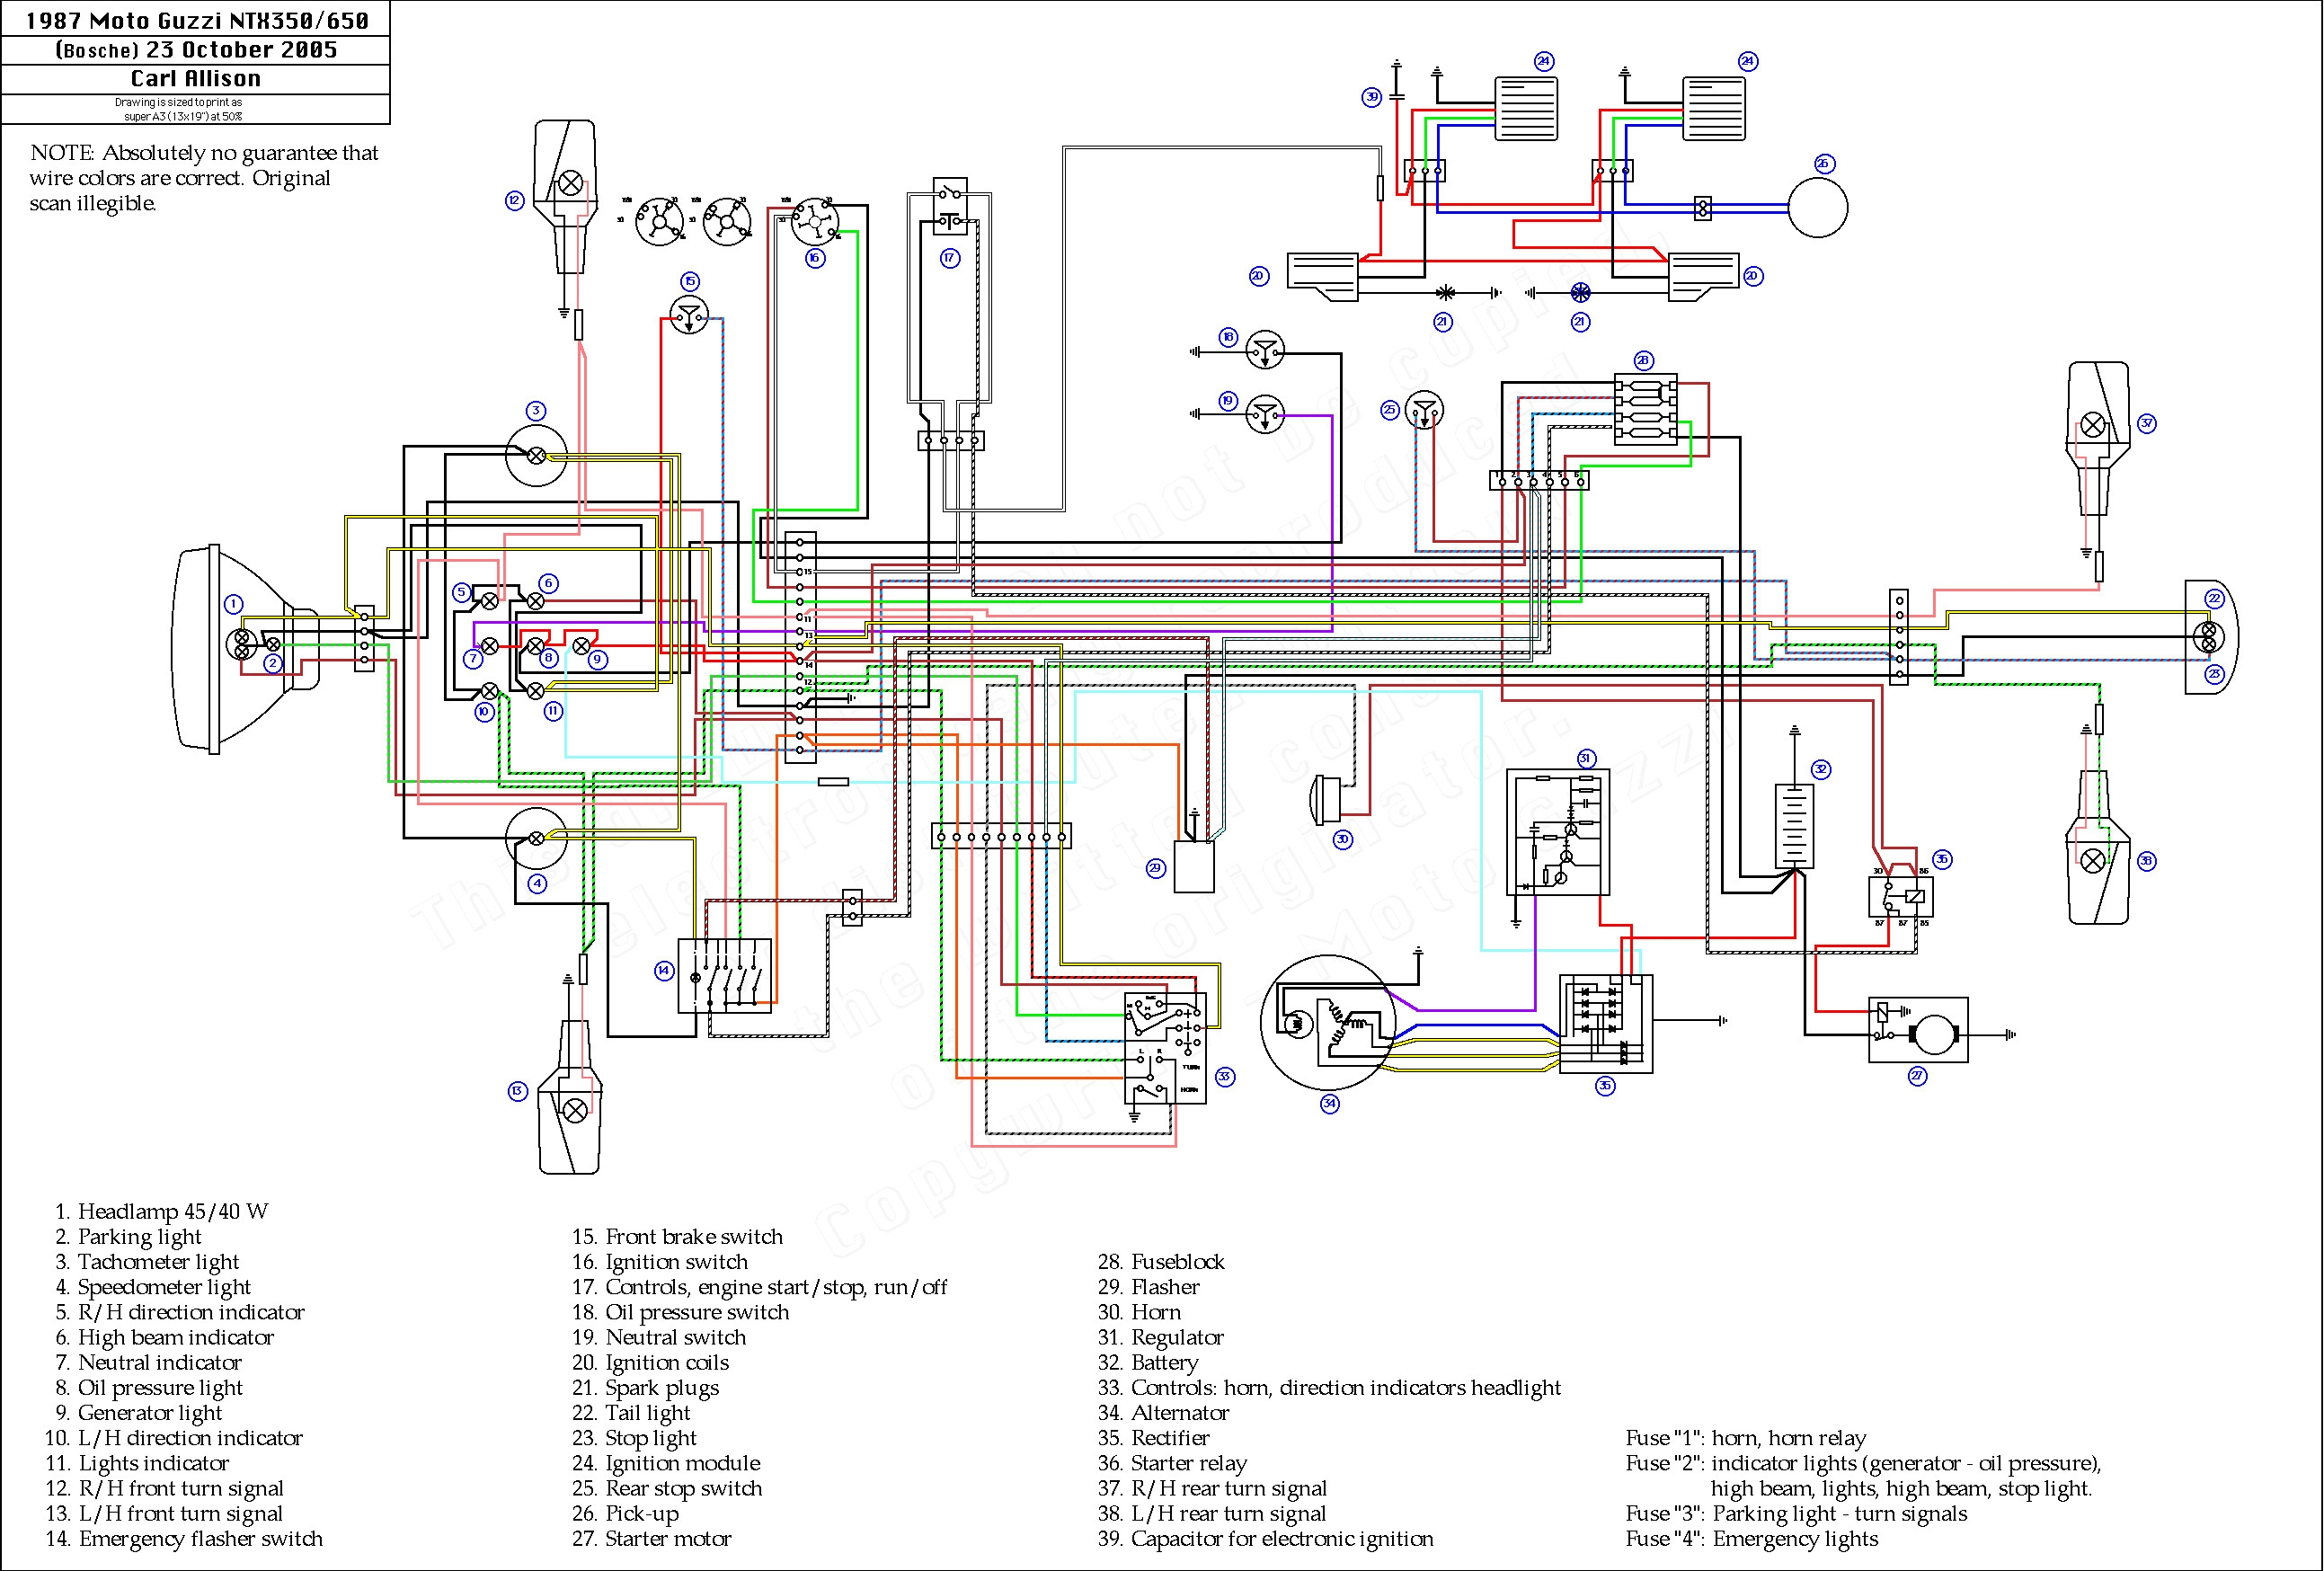 ingersoll rand 2475n7 5 wiring diagram Download-Yamaha Warrior 350 Wiring Diagram 4 Wheeler Example Electrical Expresslane 2018 Q2 Pages 1 50 Ingersoll Rand 5-c